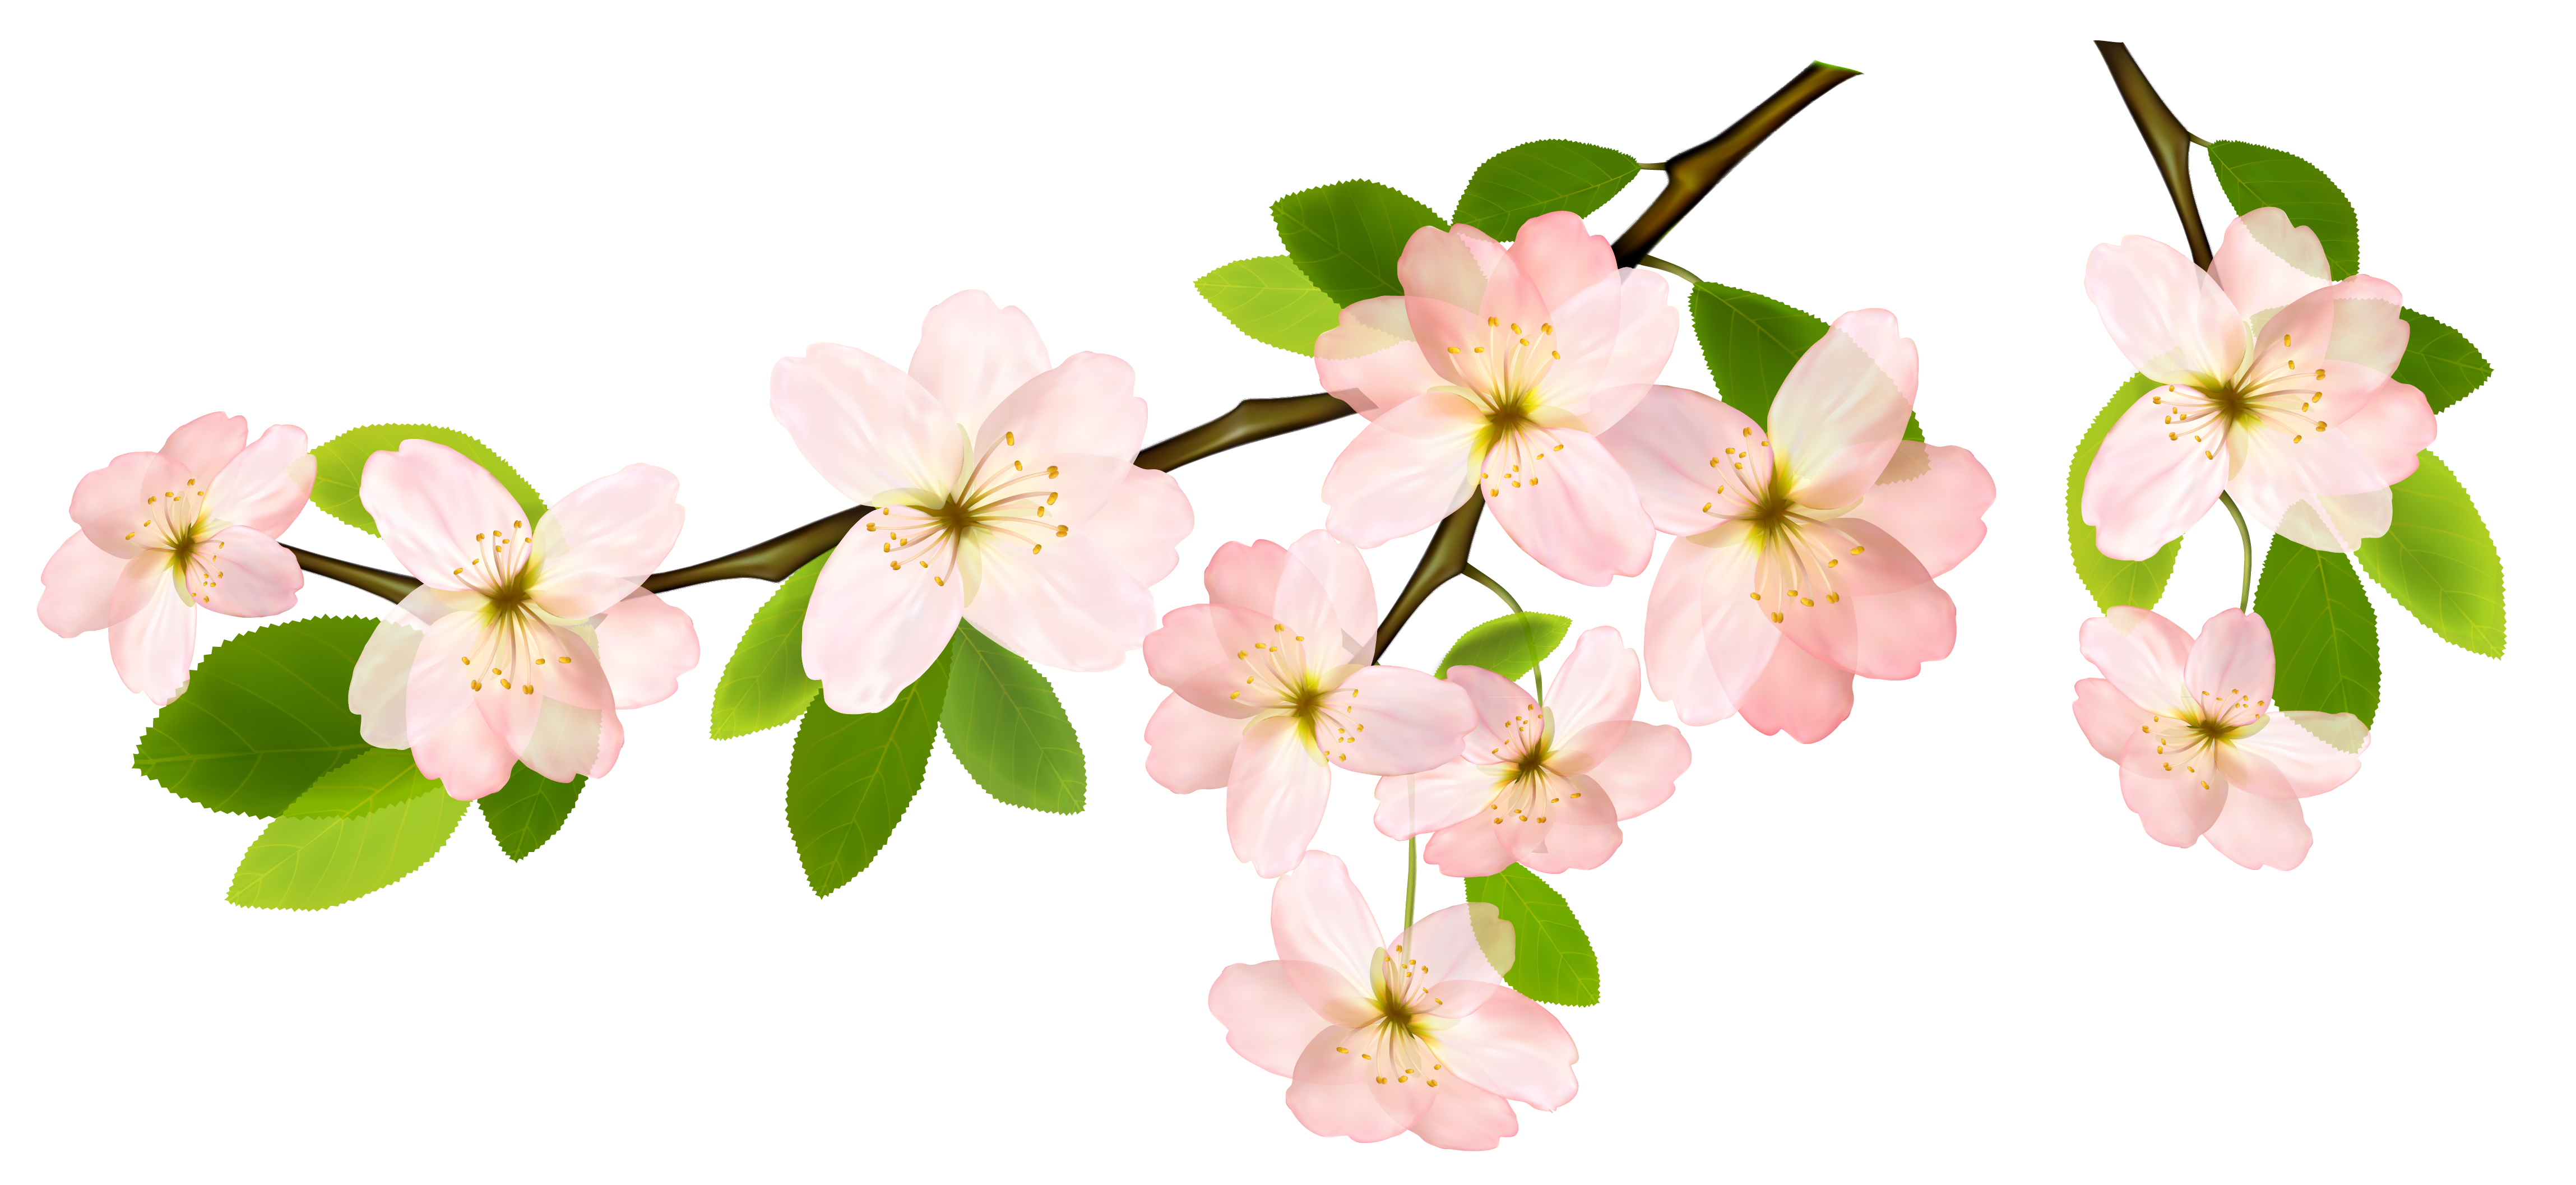 Spring clipart garland. Branch png picture leaves